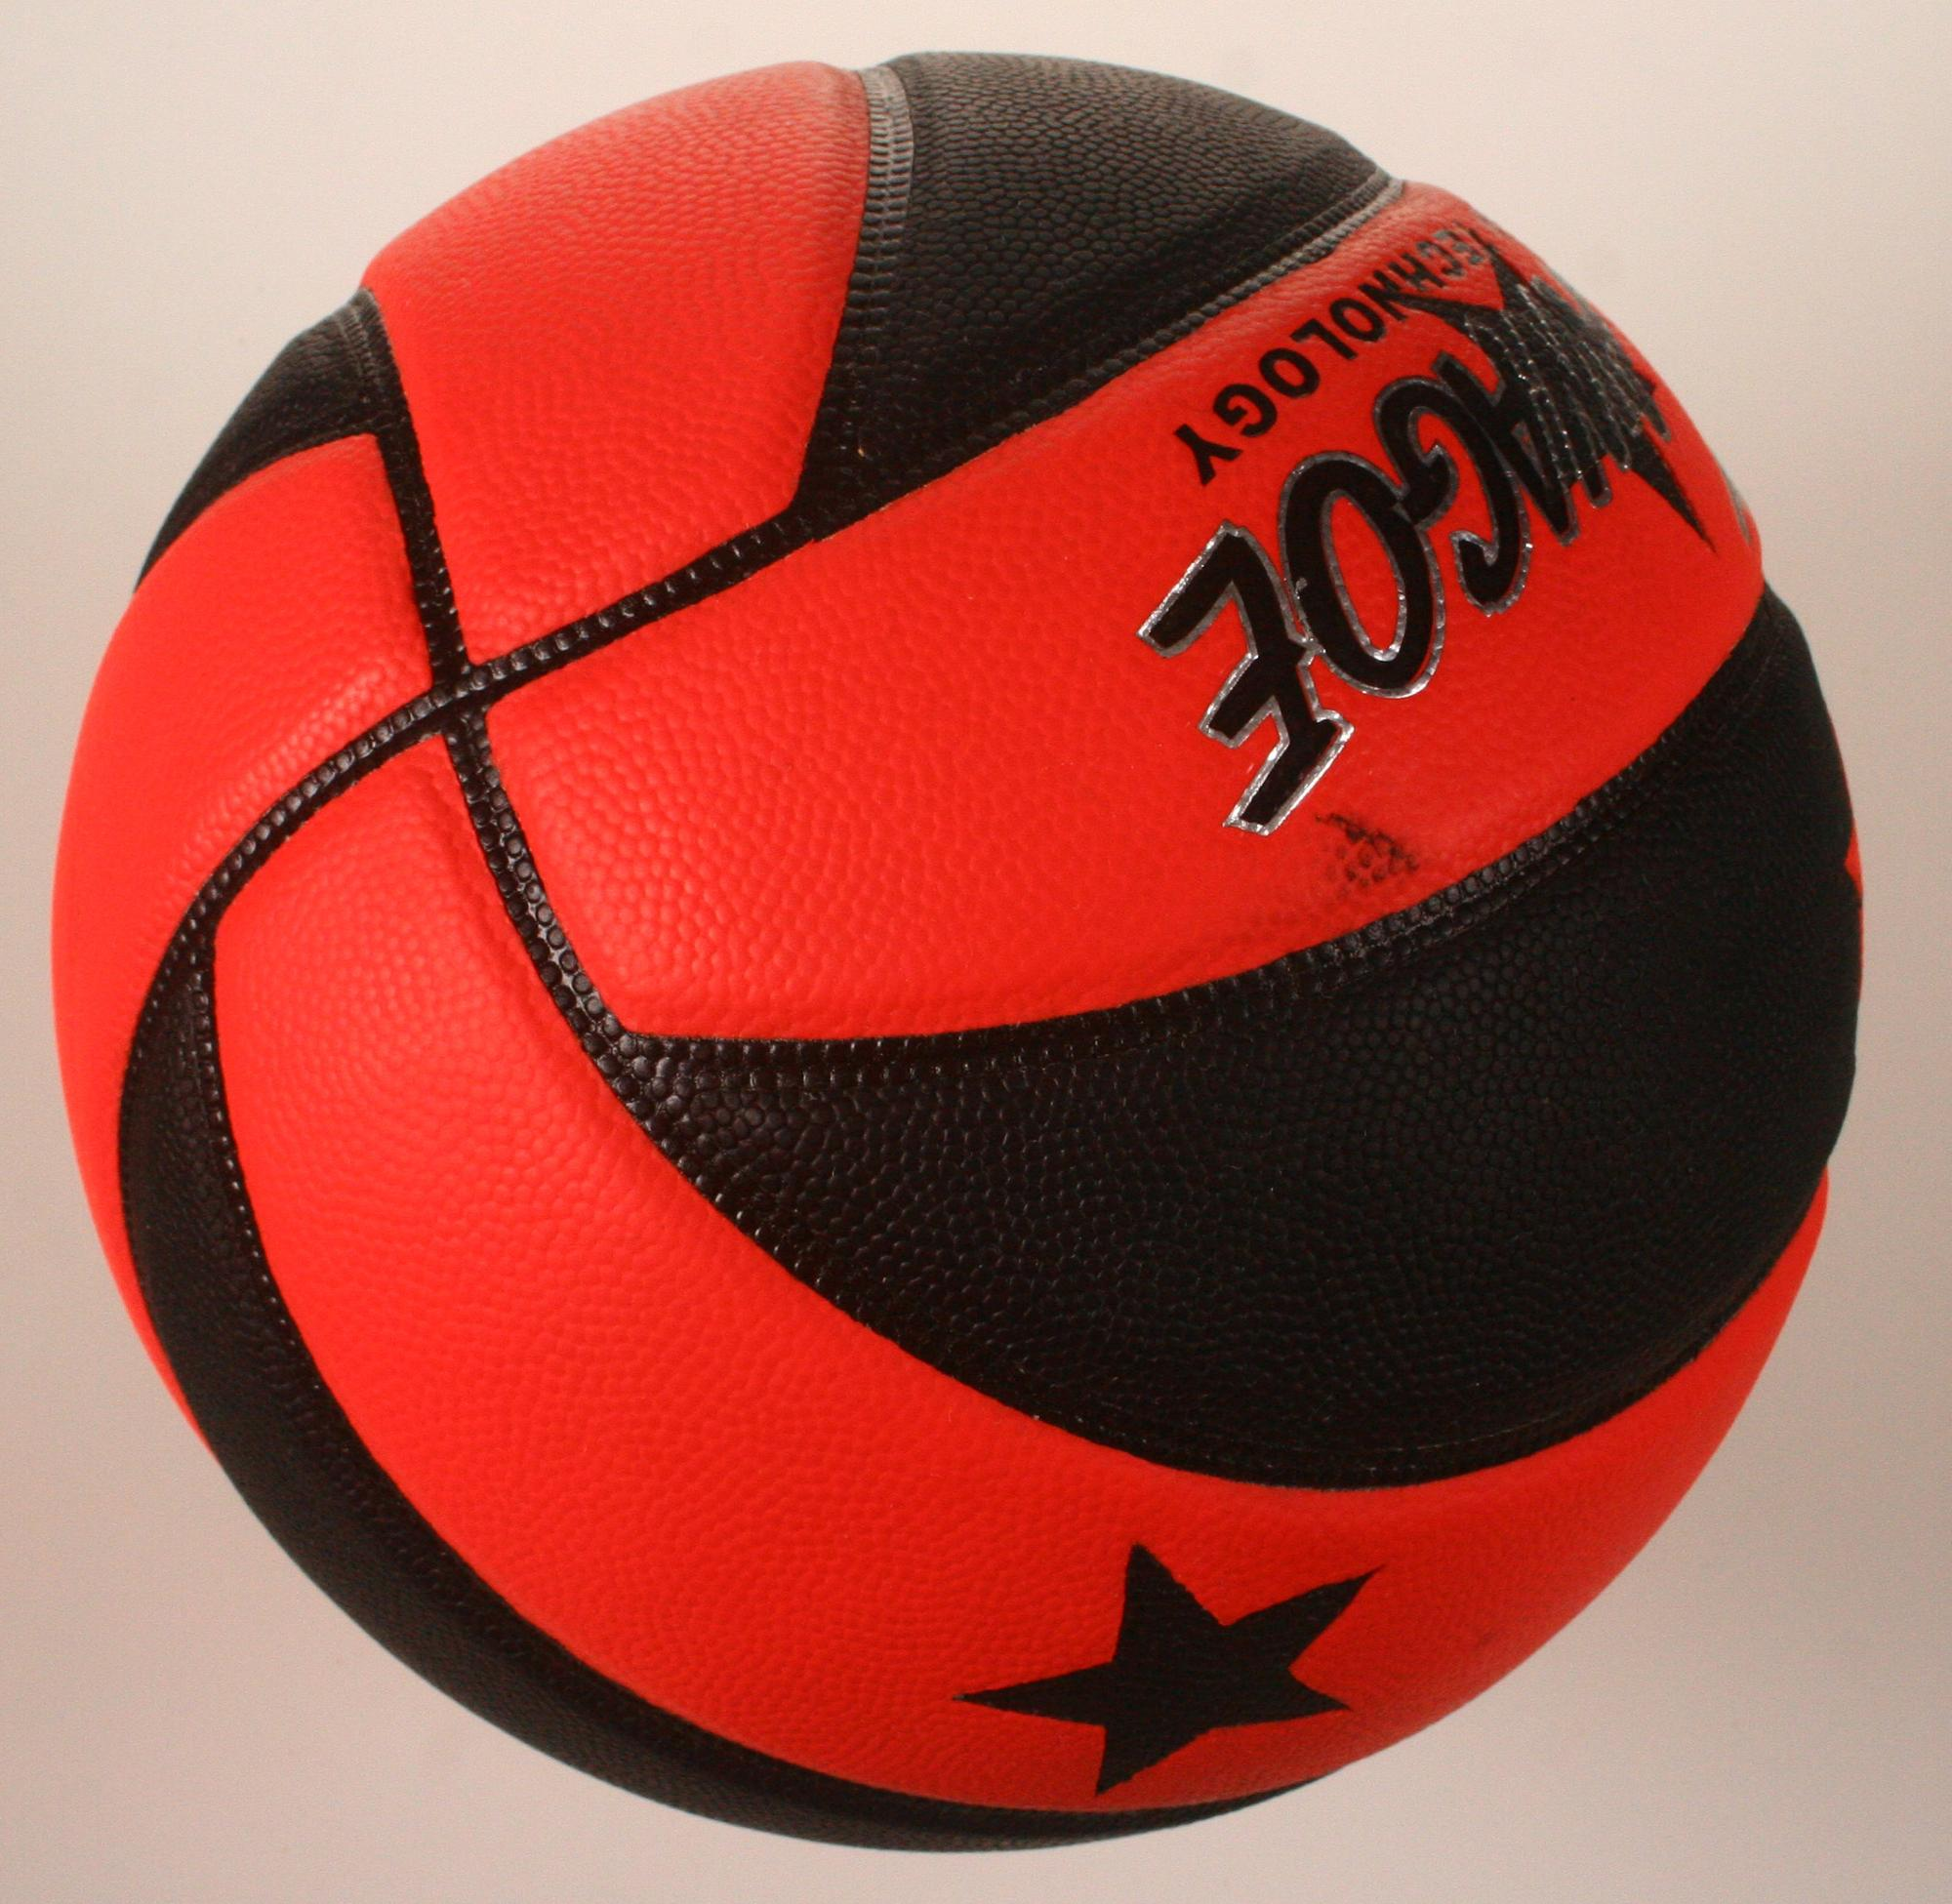 leather look rubber foam basketball for India market